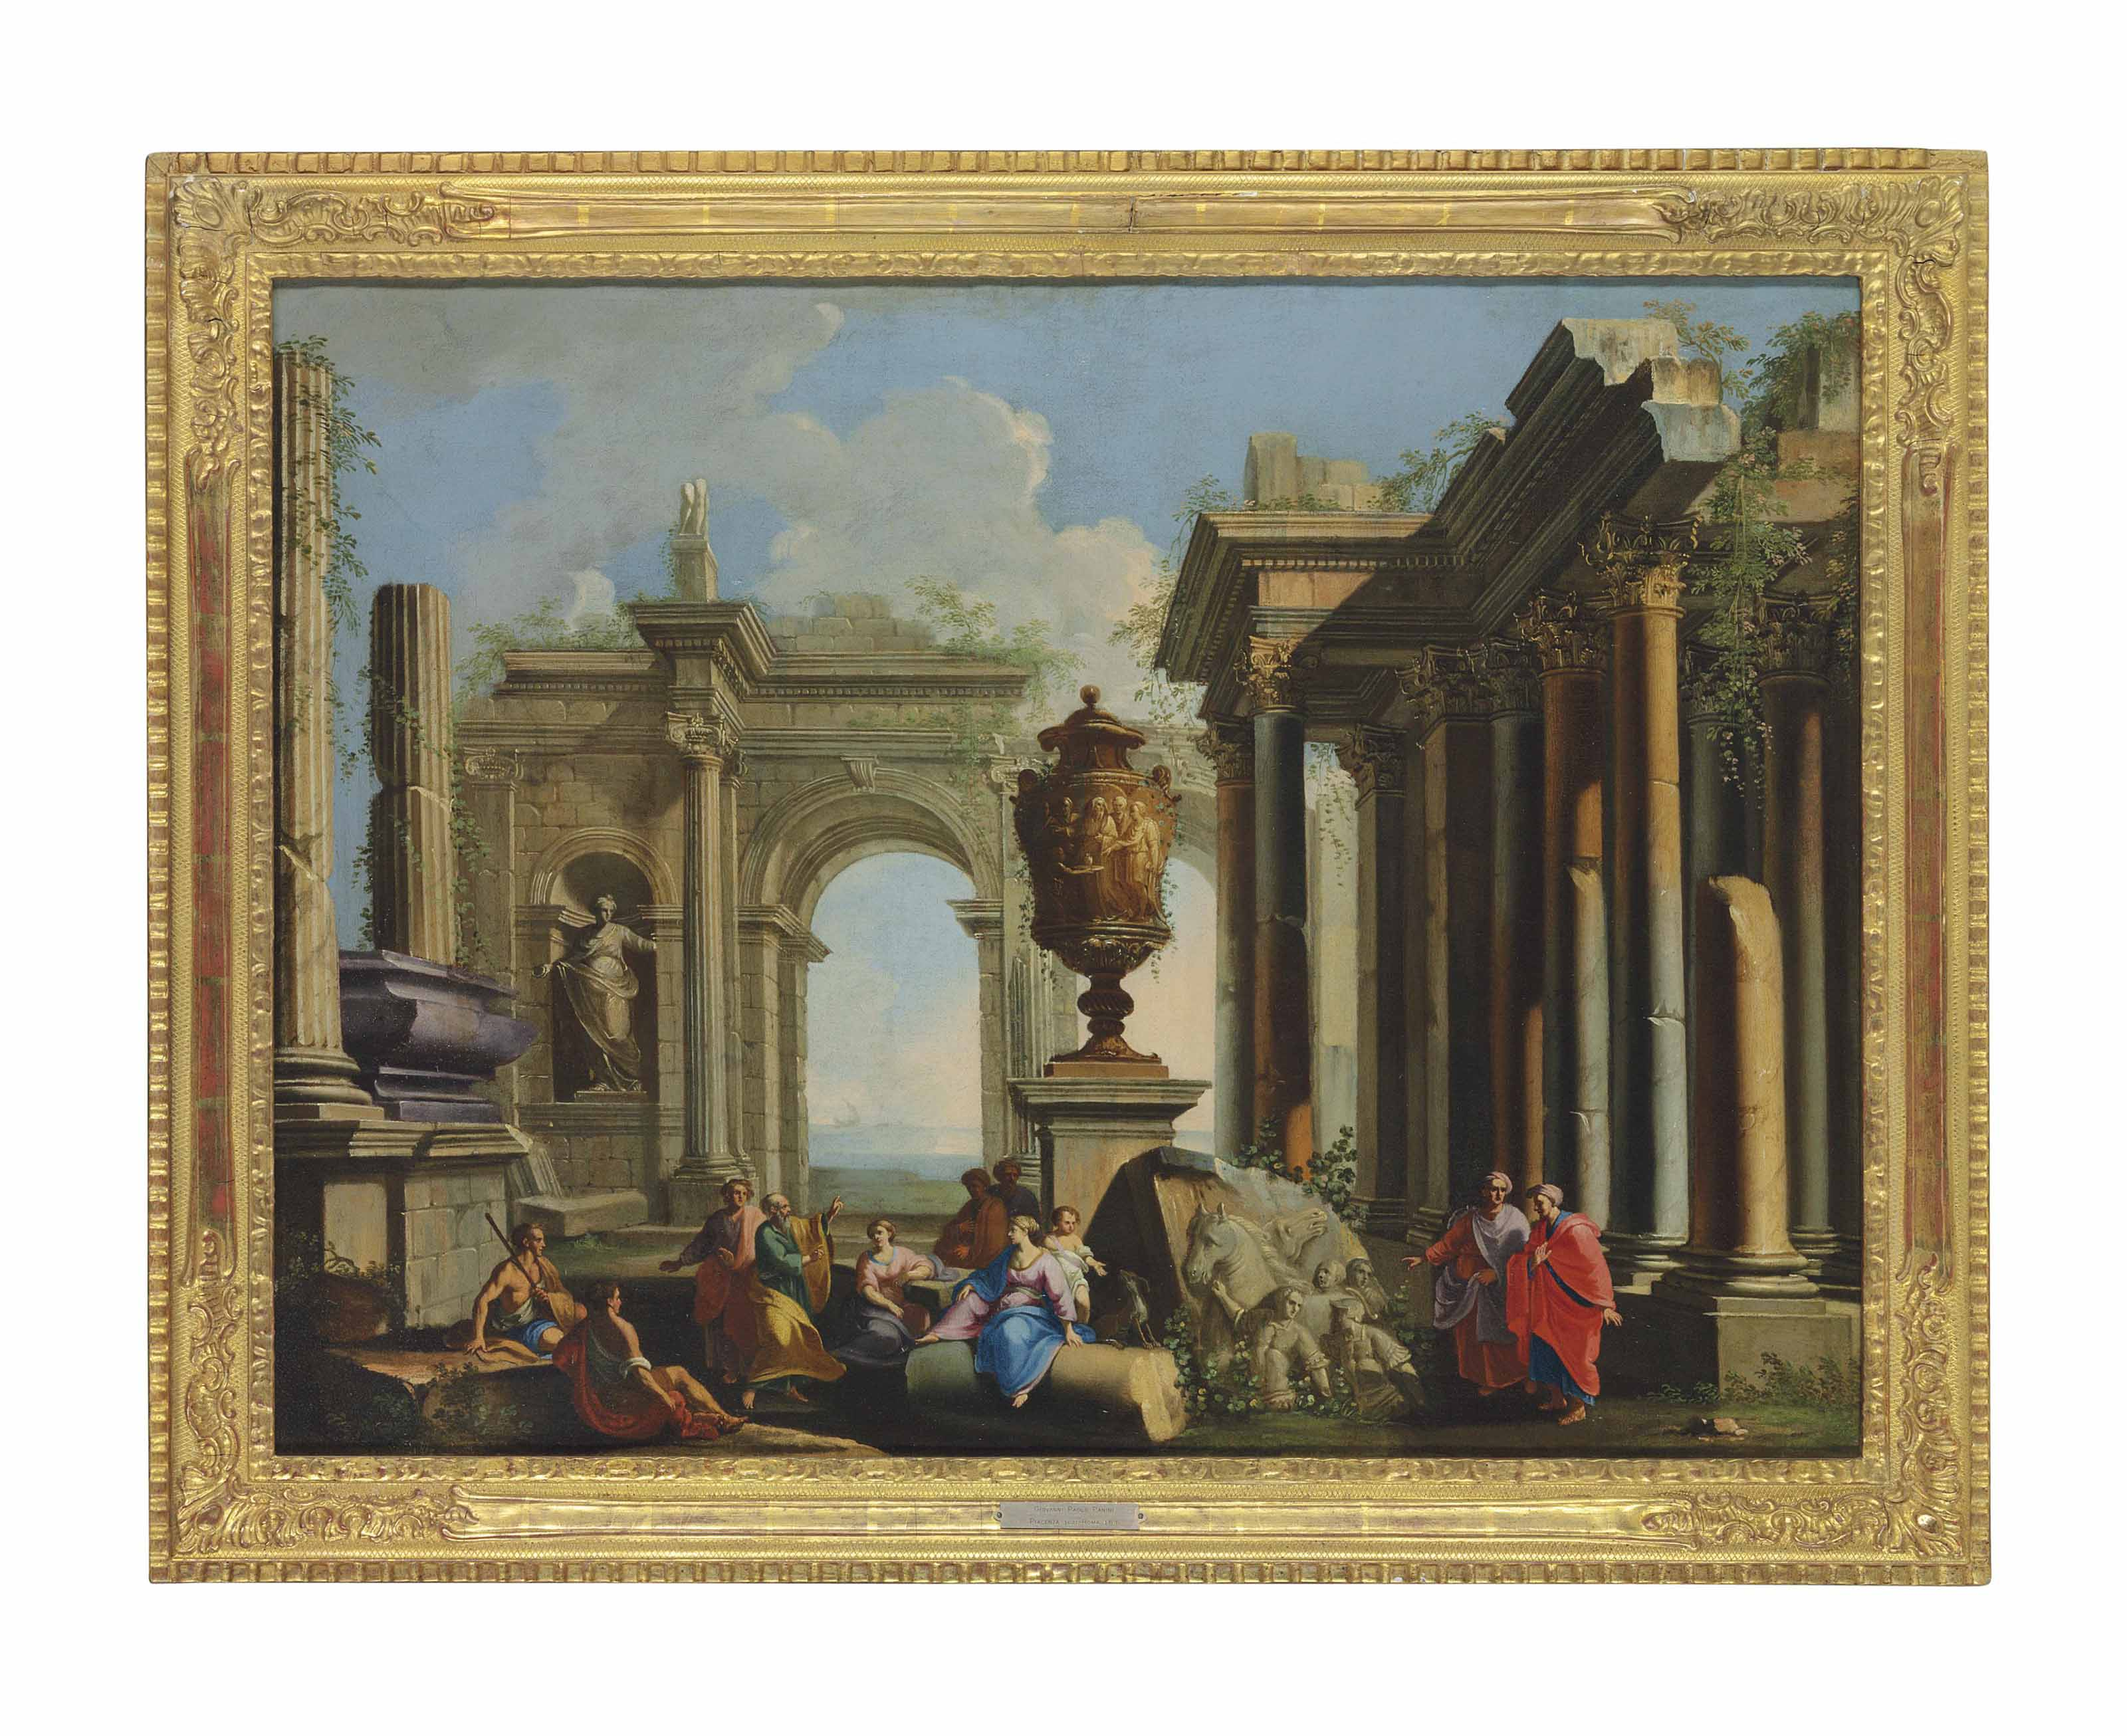 An architectural capriccio with an apostle preaching among ruins